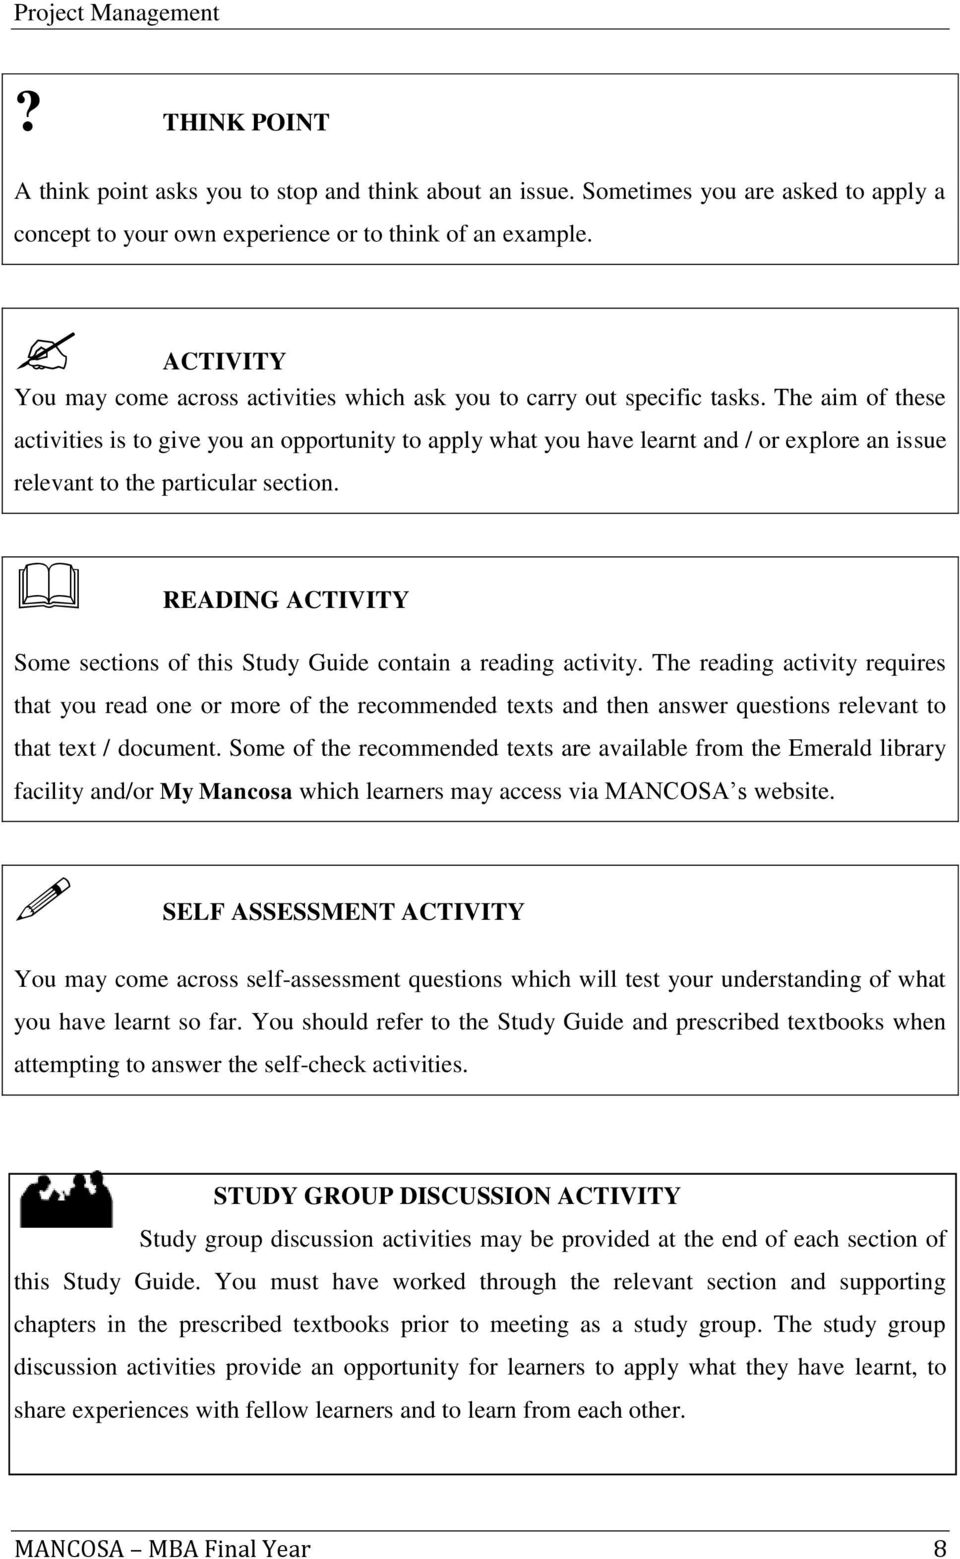 Management Study Guide - Library